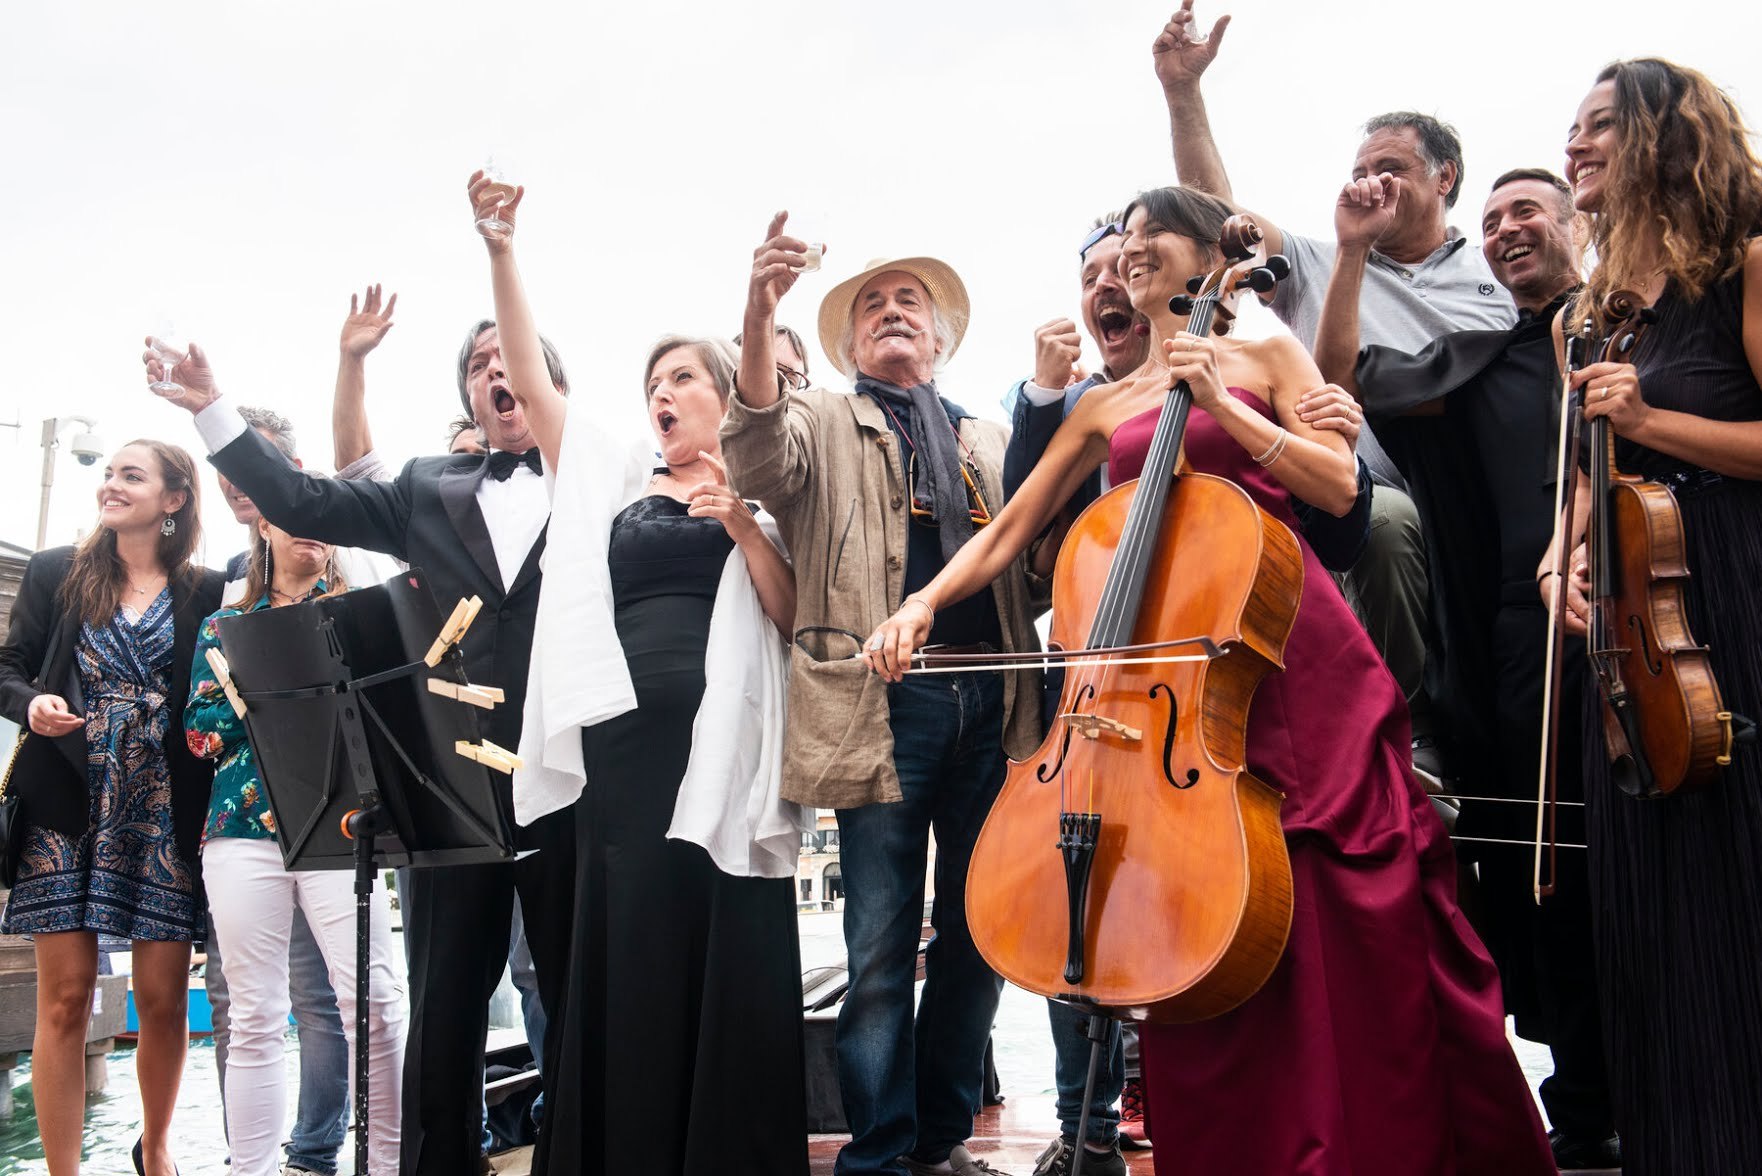 """A prosecco toast.At a ceremony, the Rev. Florio Tessari blessed the violin and said he hoped it would """"travel the world as a message of hope."""""""